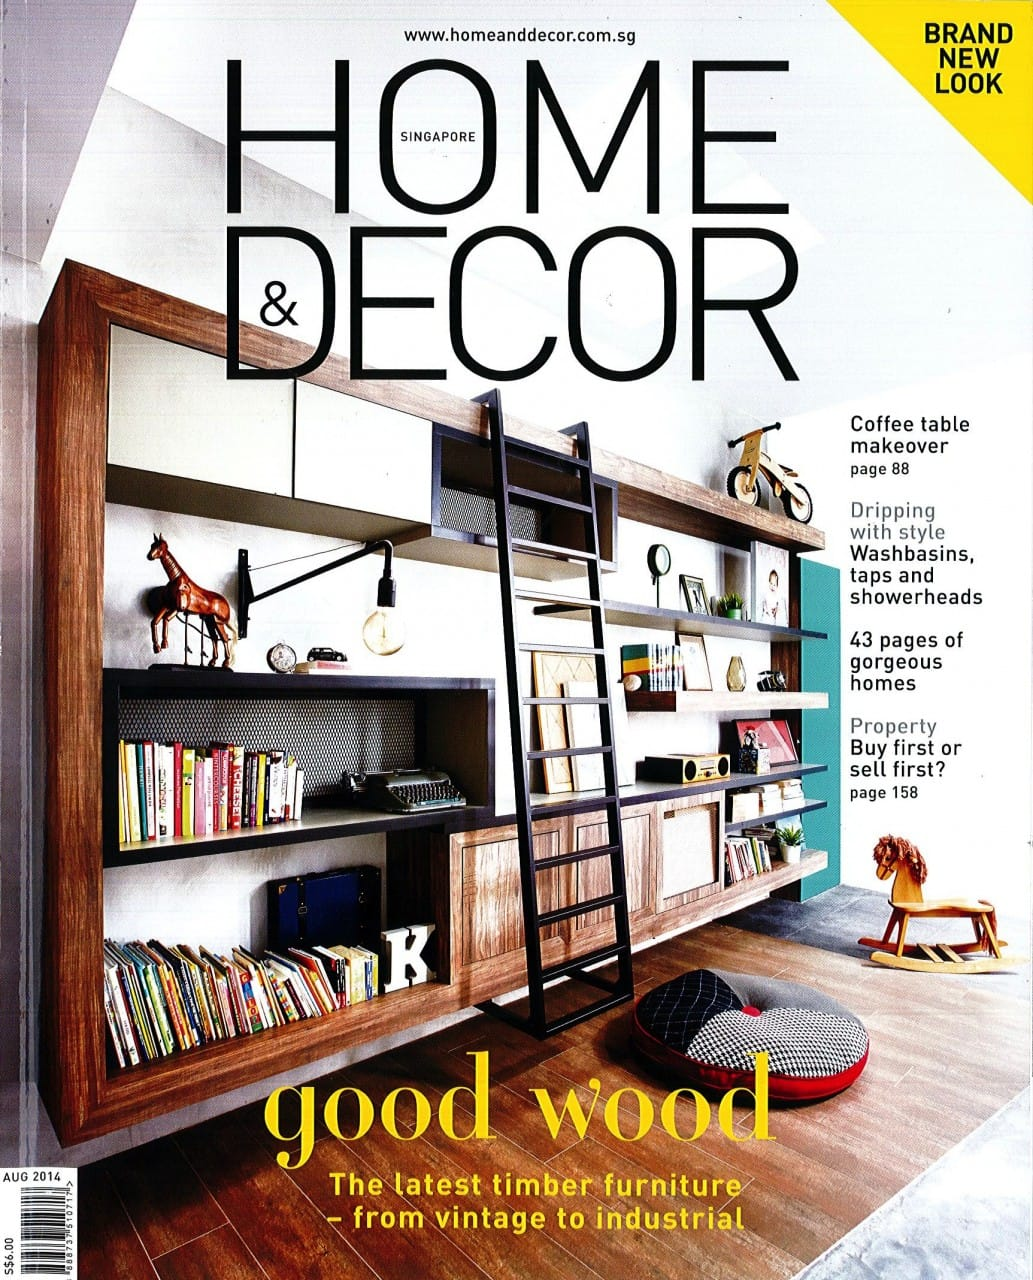 Home & Decor - August 2014